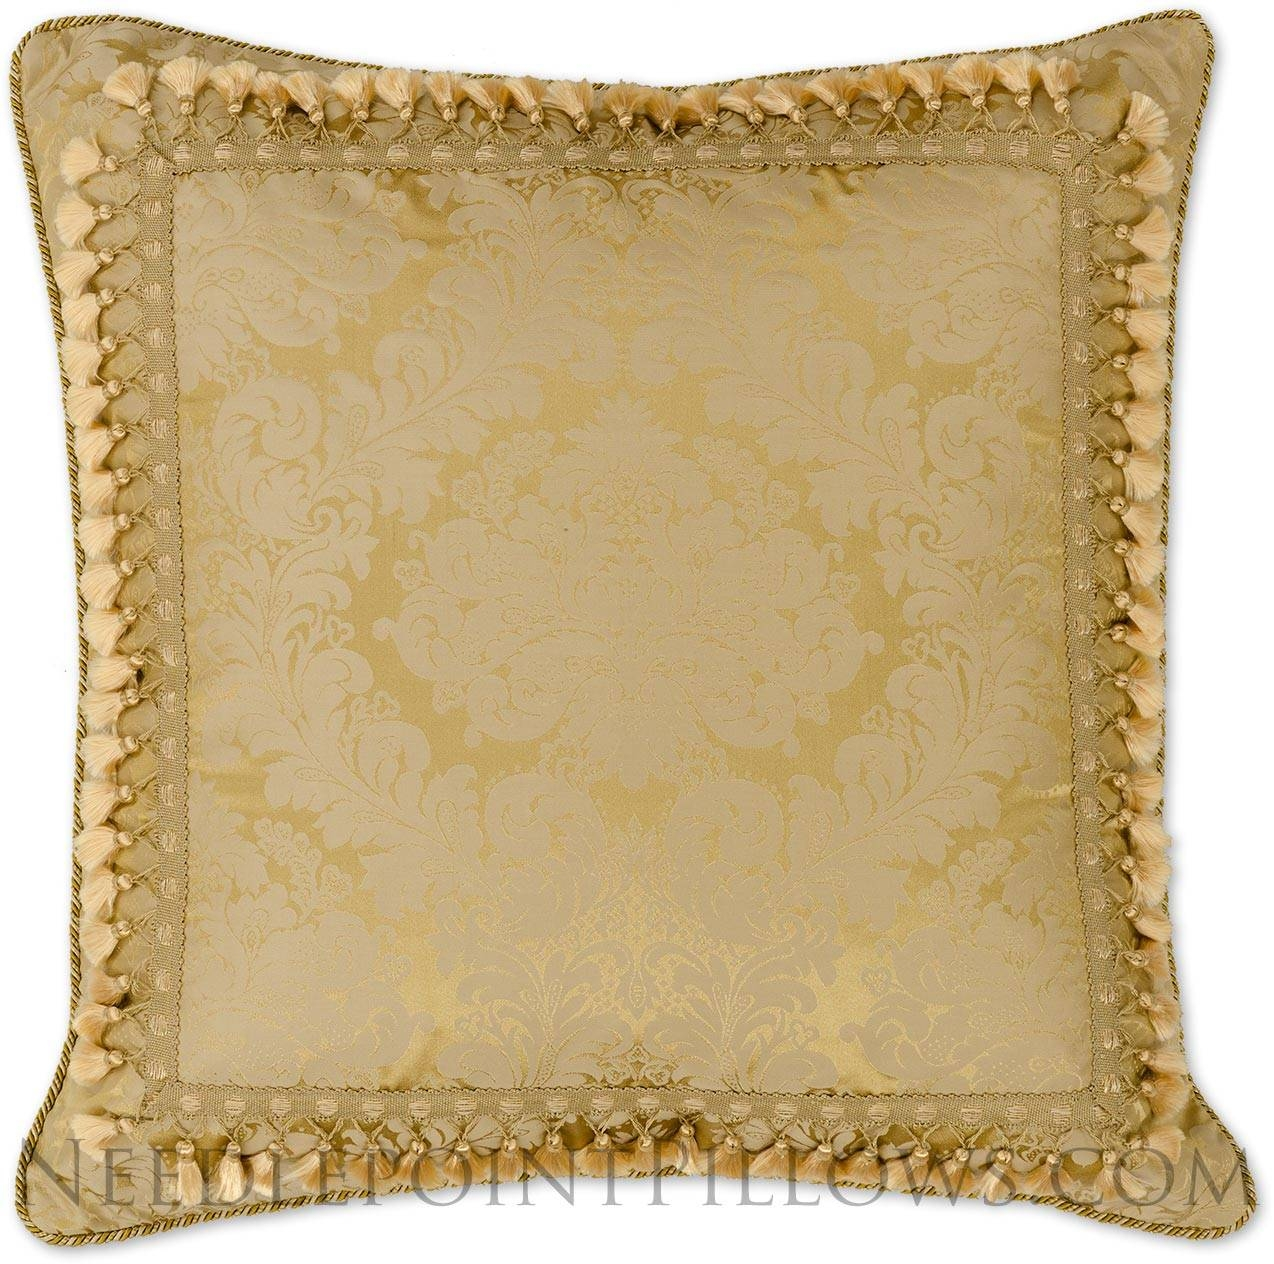 Decorative Gold Throw Pillows : Decorative Gold Throw Pillows with regard to Gold Sofa Pillows (Image 2 of 15)